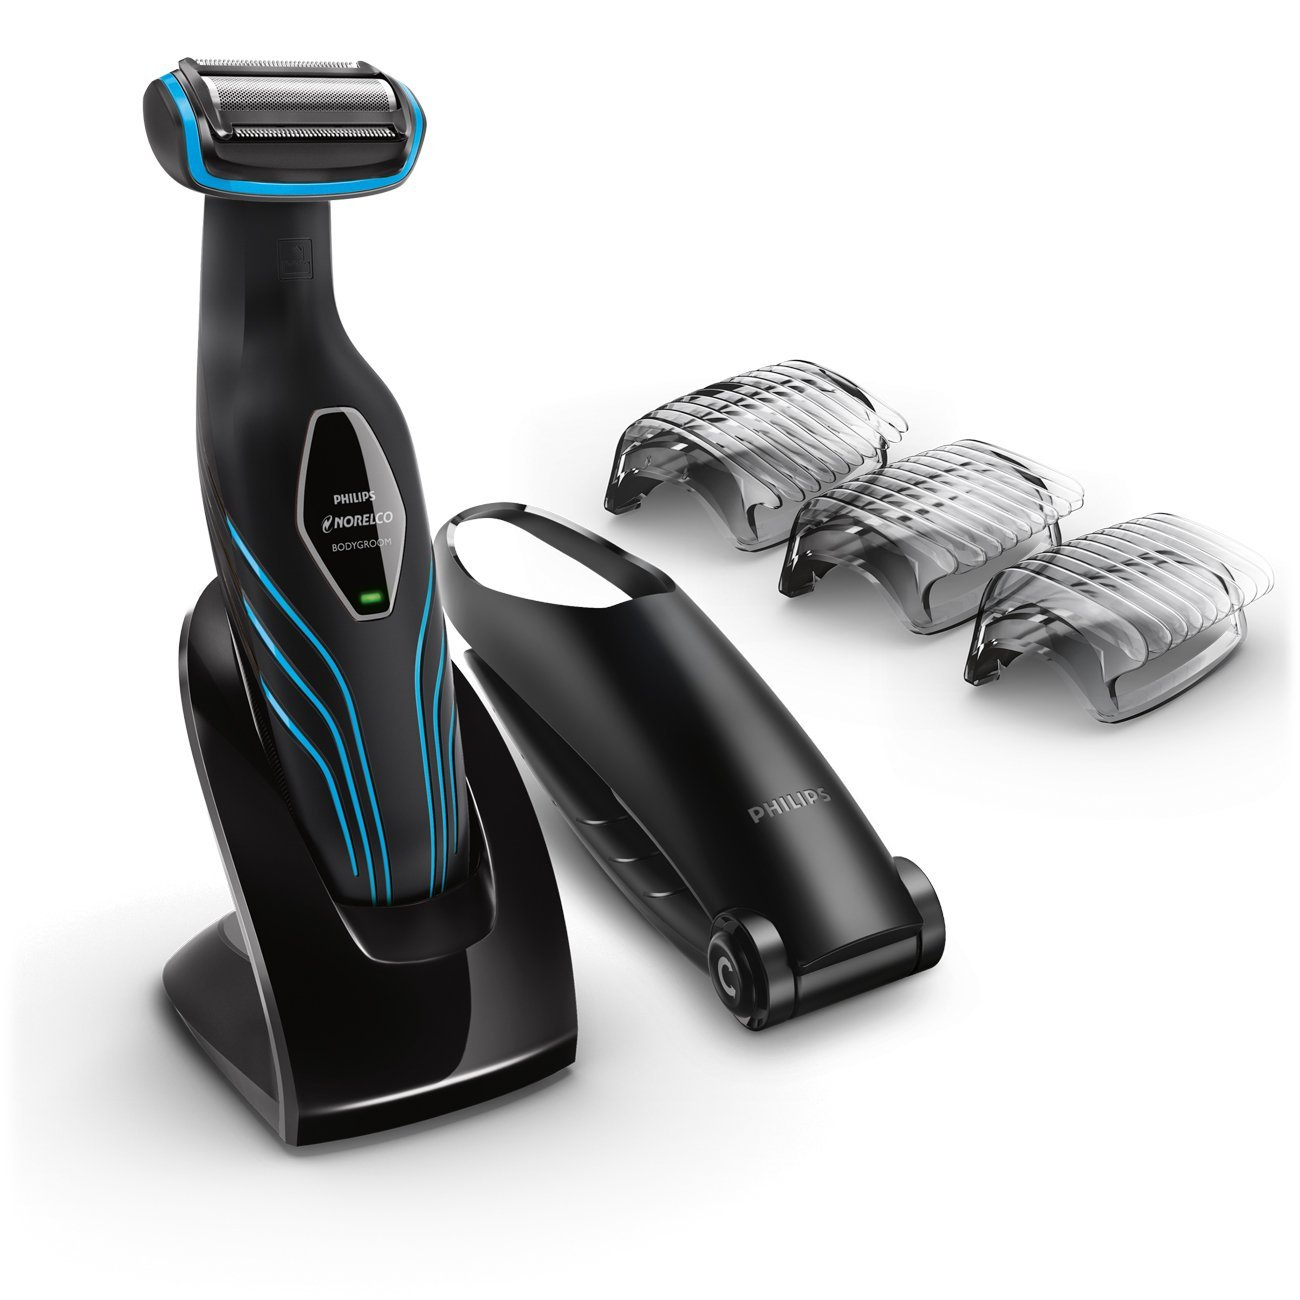 Philips Norelco Bodygroom Series 3100, Shave and trim with back attachment, BG2034 by Philips Norelco (Image #1)